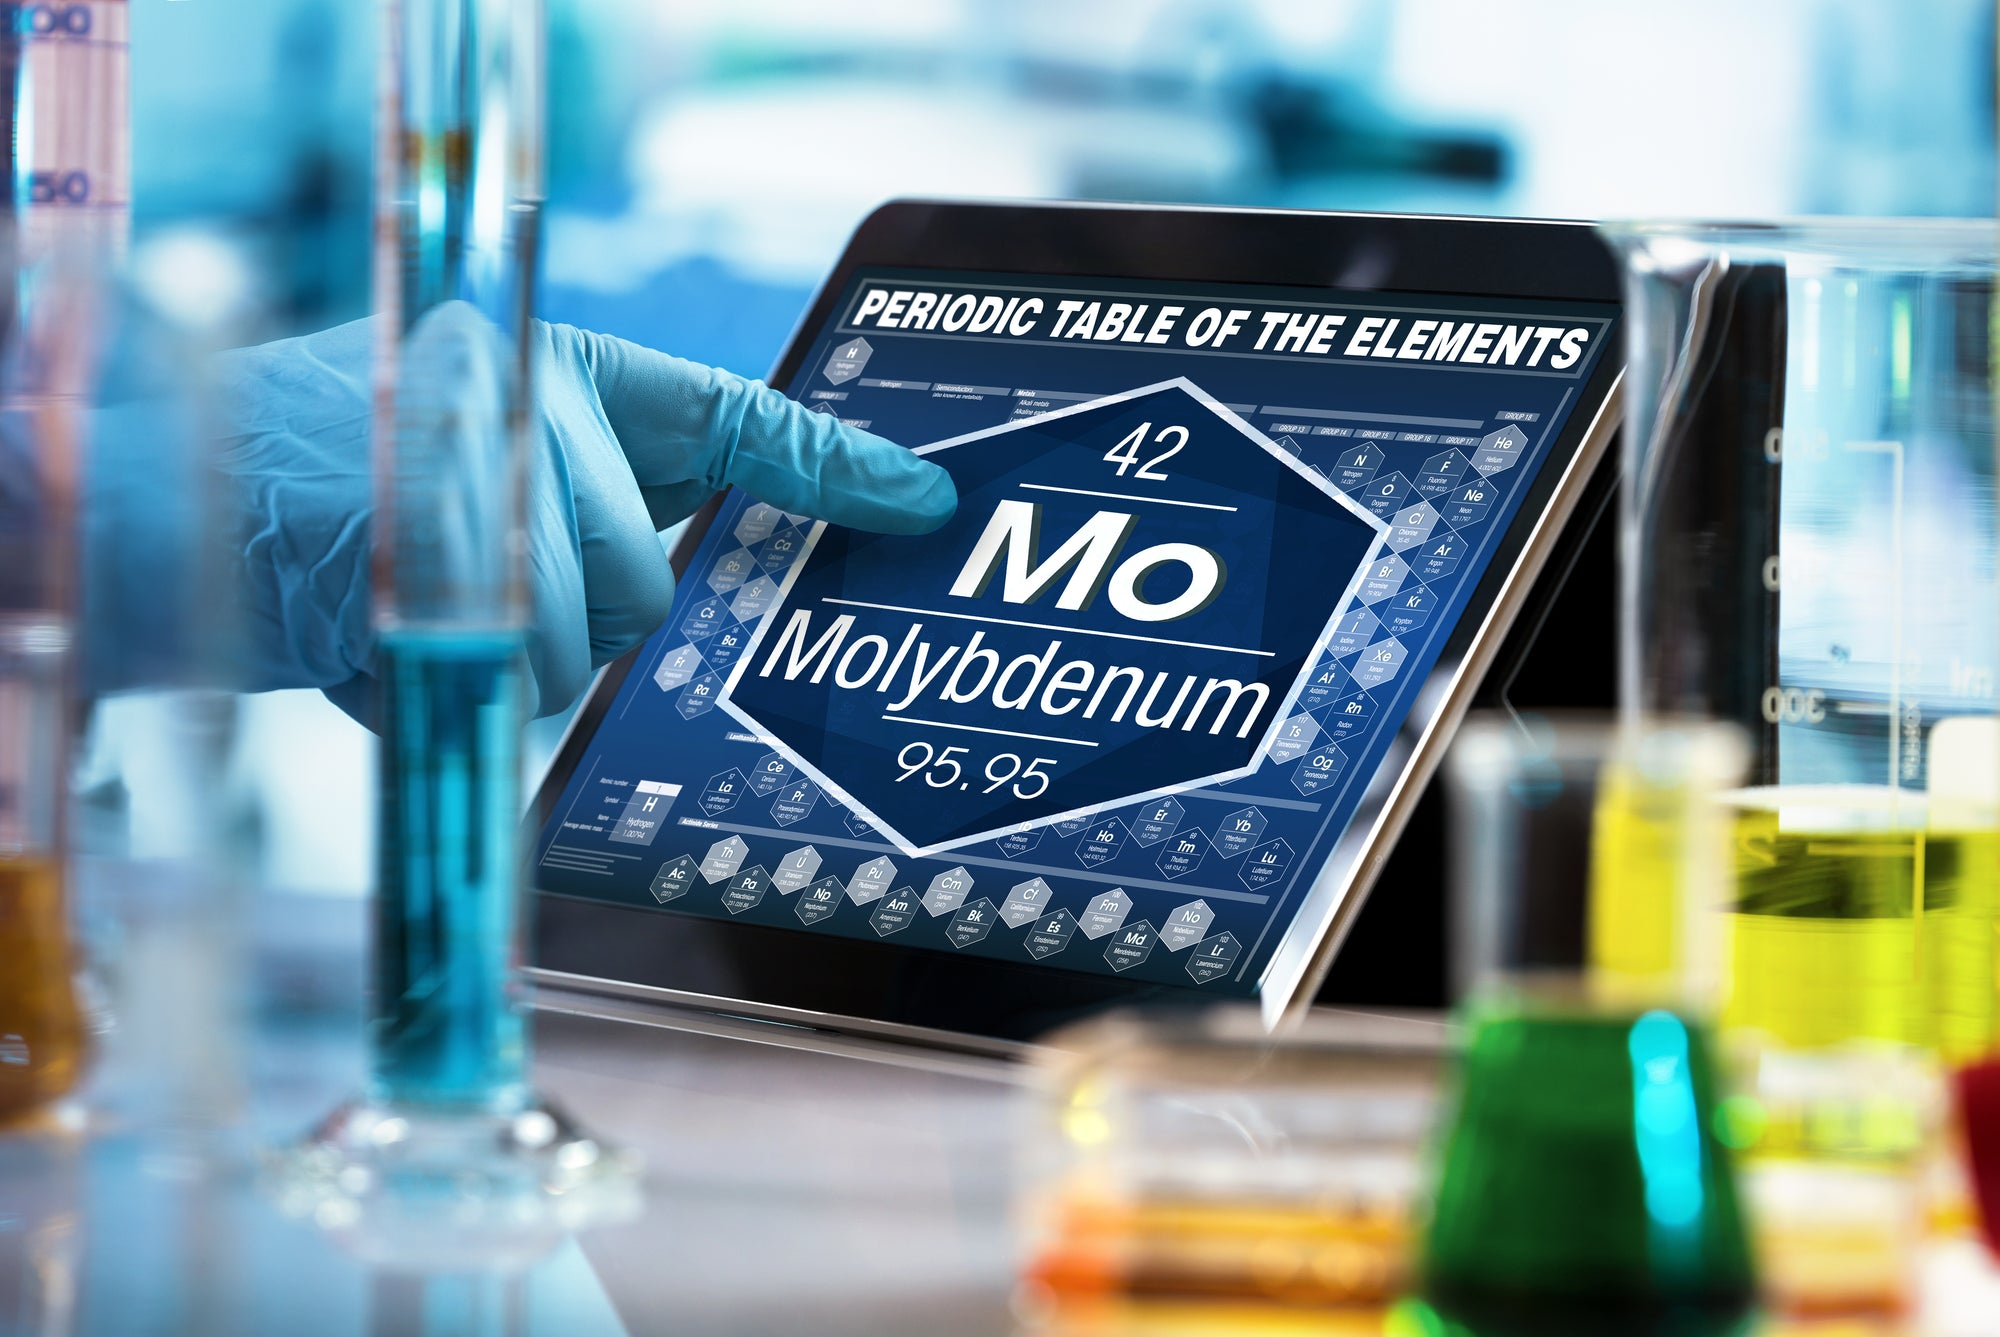 Molybdenum: An Important Micronutrient for Detoxification